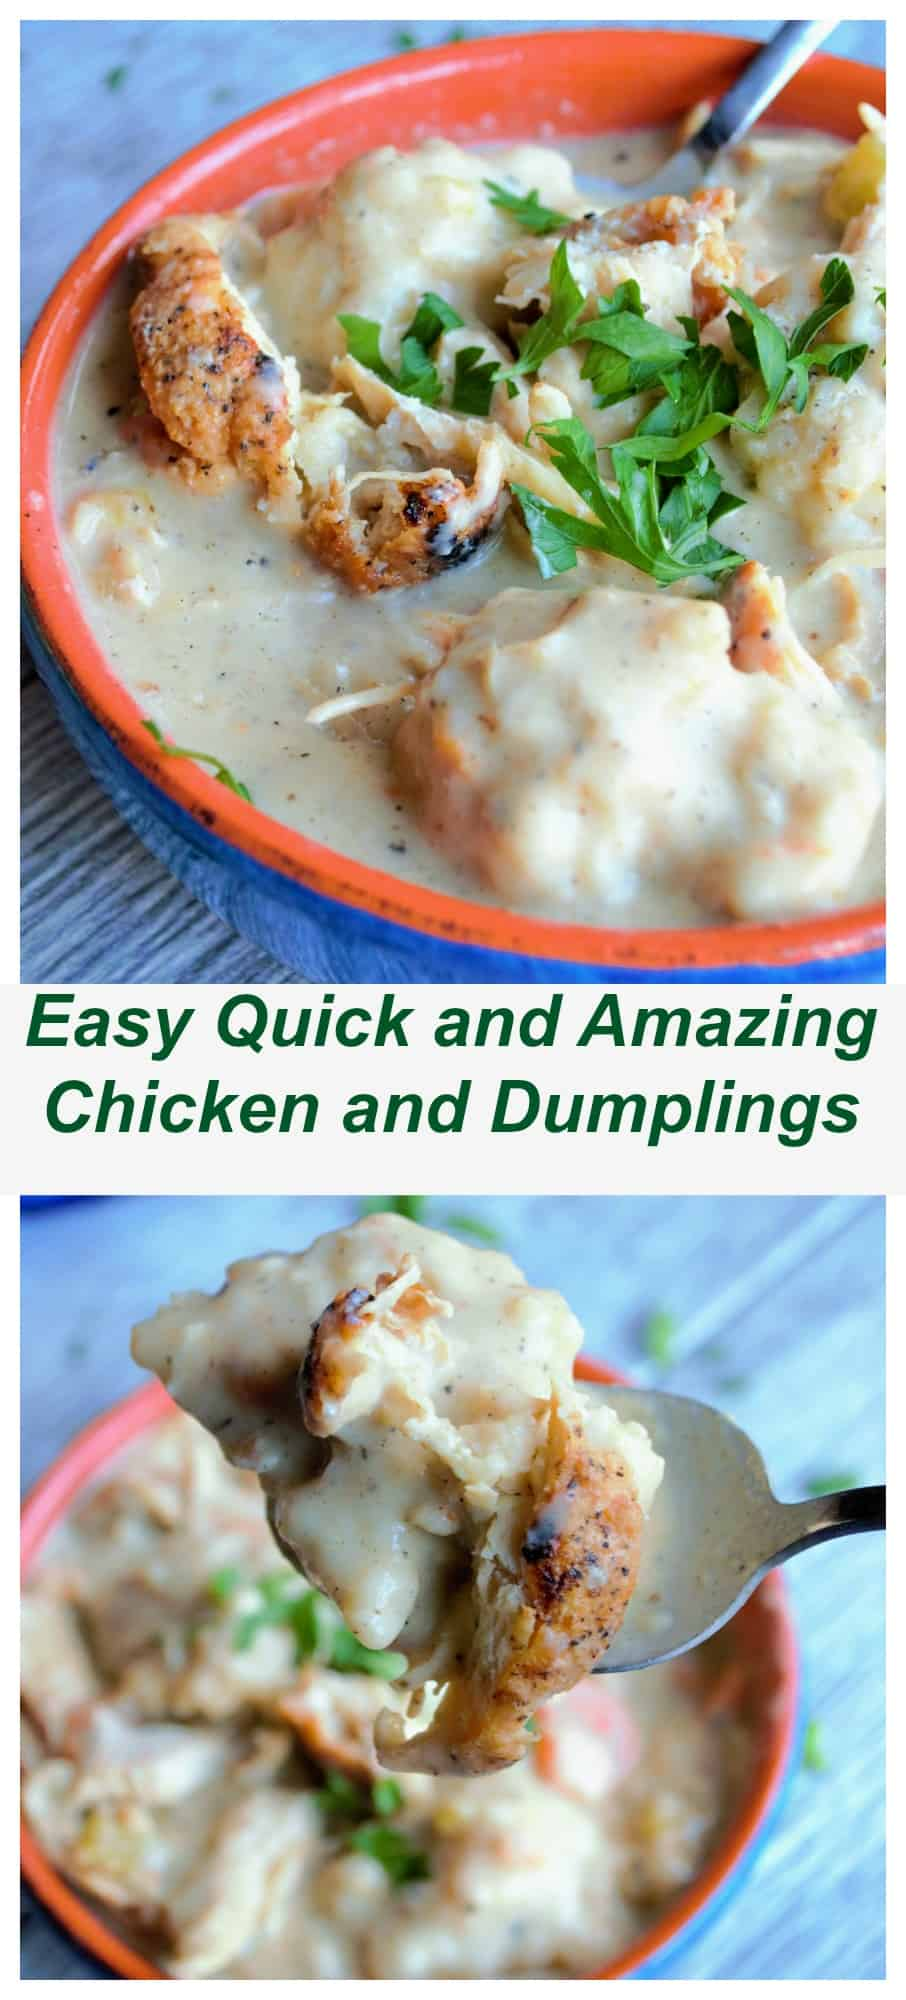 The BestChicken and Dumplings | The BestChicken and Dumplings is a hearty blend of roasted chicken and plump dumplings in a perfectly seasoned creamy soup. | Pack Momma | https://www.awickedwhisk.com